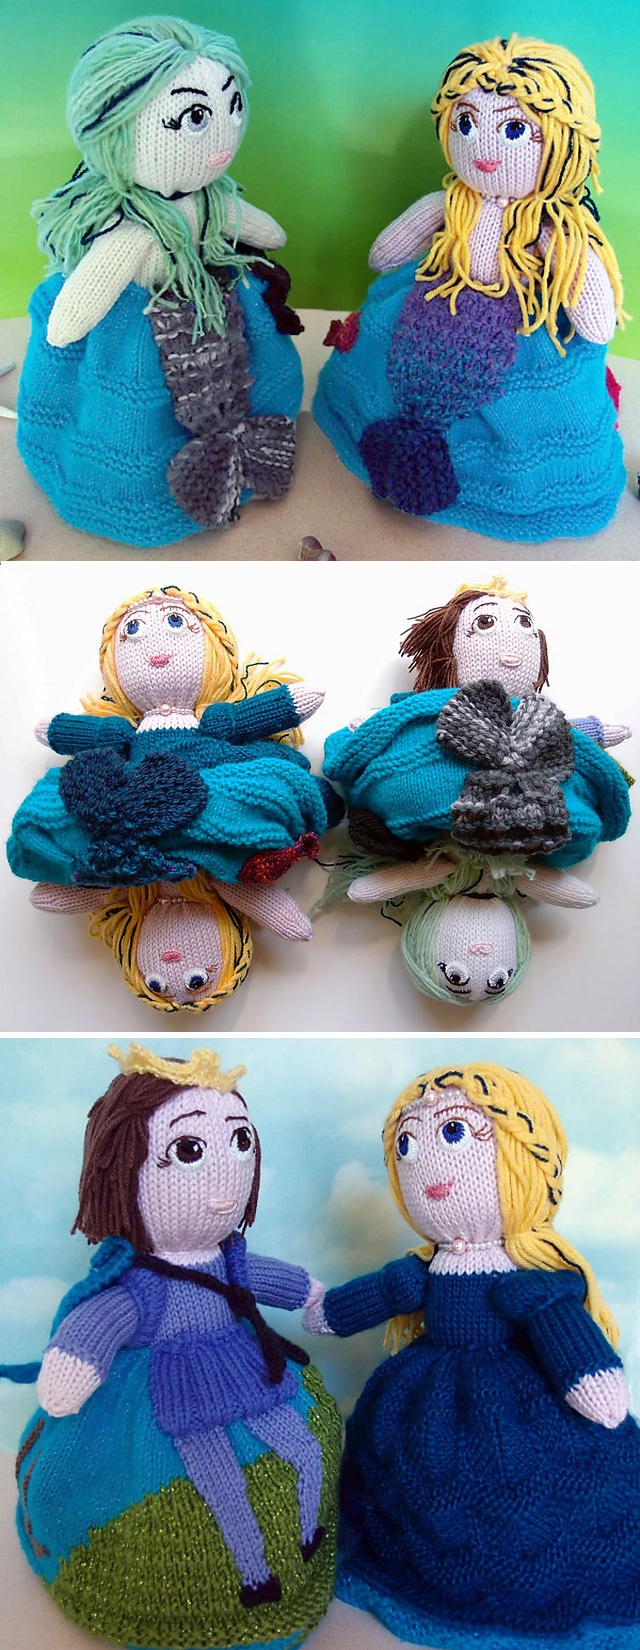 Knitting Pattern for Little Mermaid Topsy-Turvy Doll Set